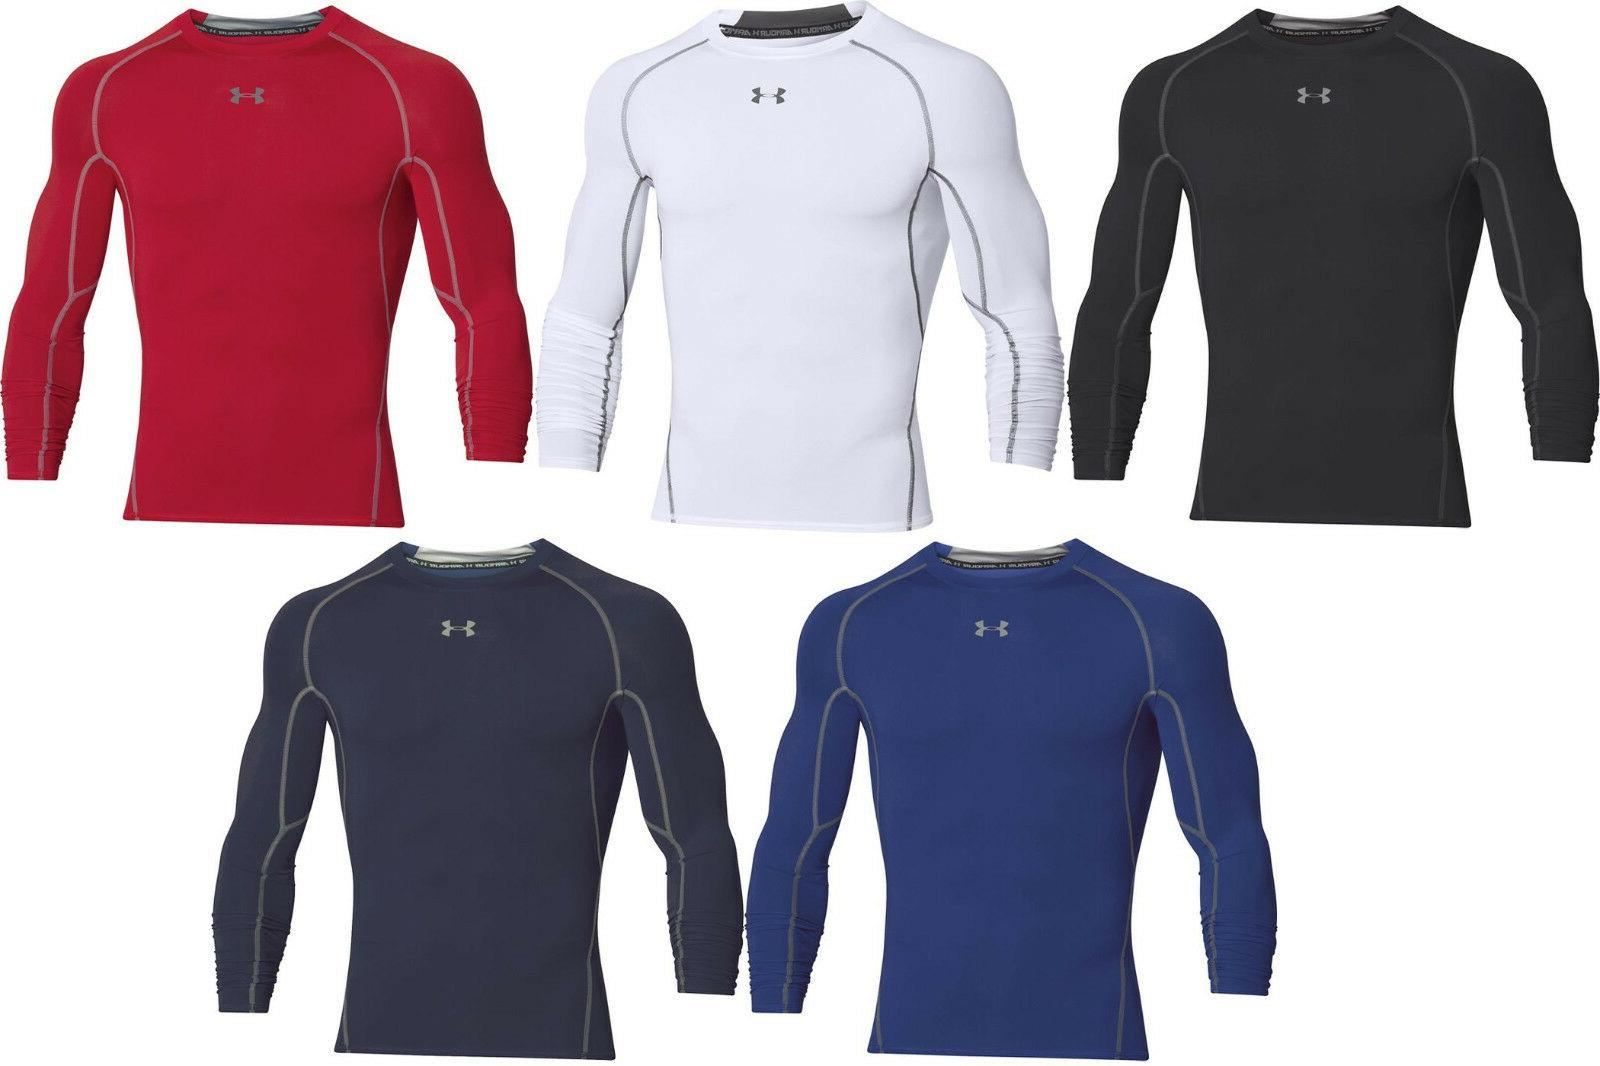 heatgear compression men s long sleeve shirt